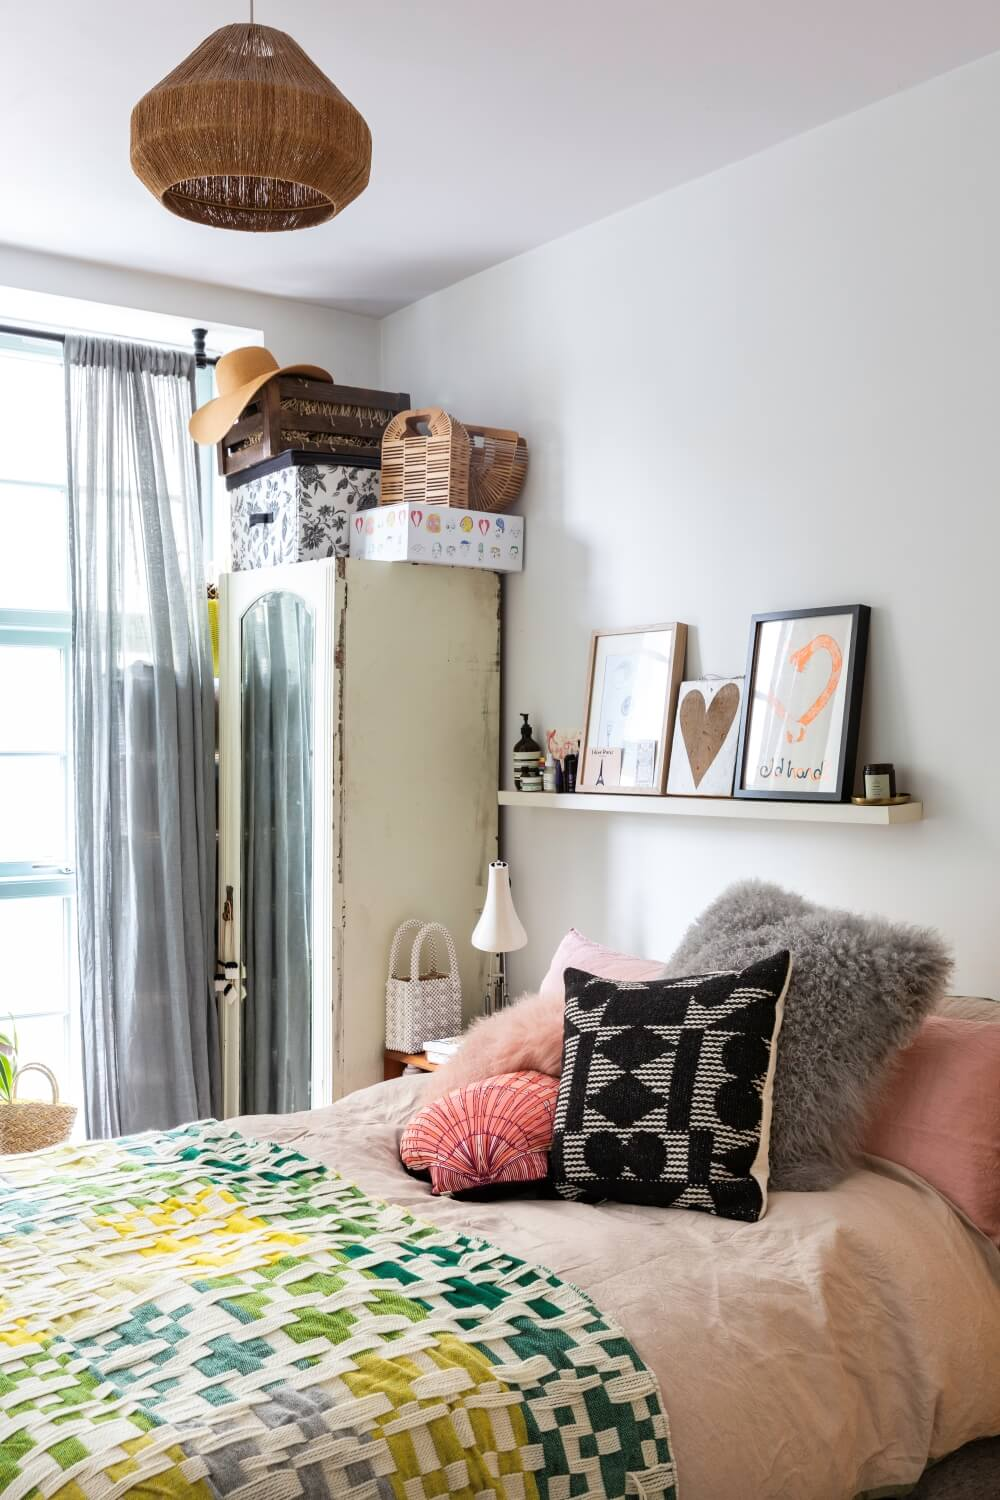 A small picture ledge serves as a nightstand above a bed.